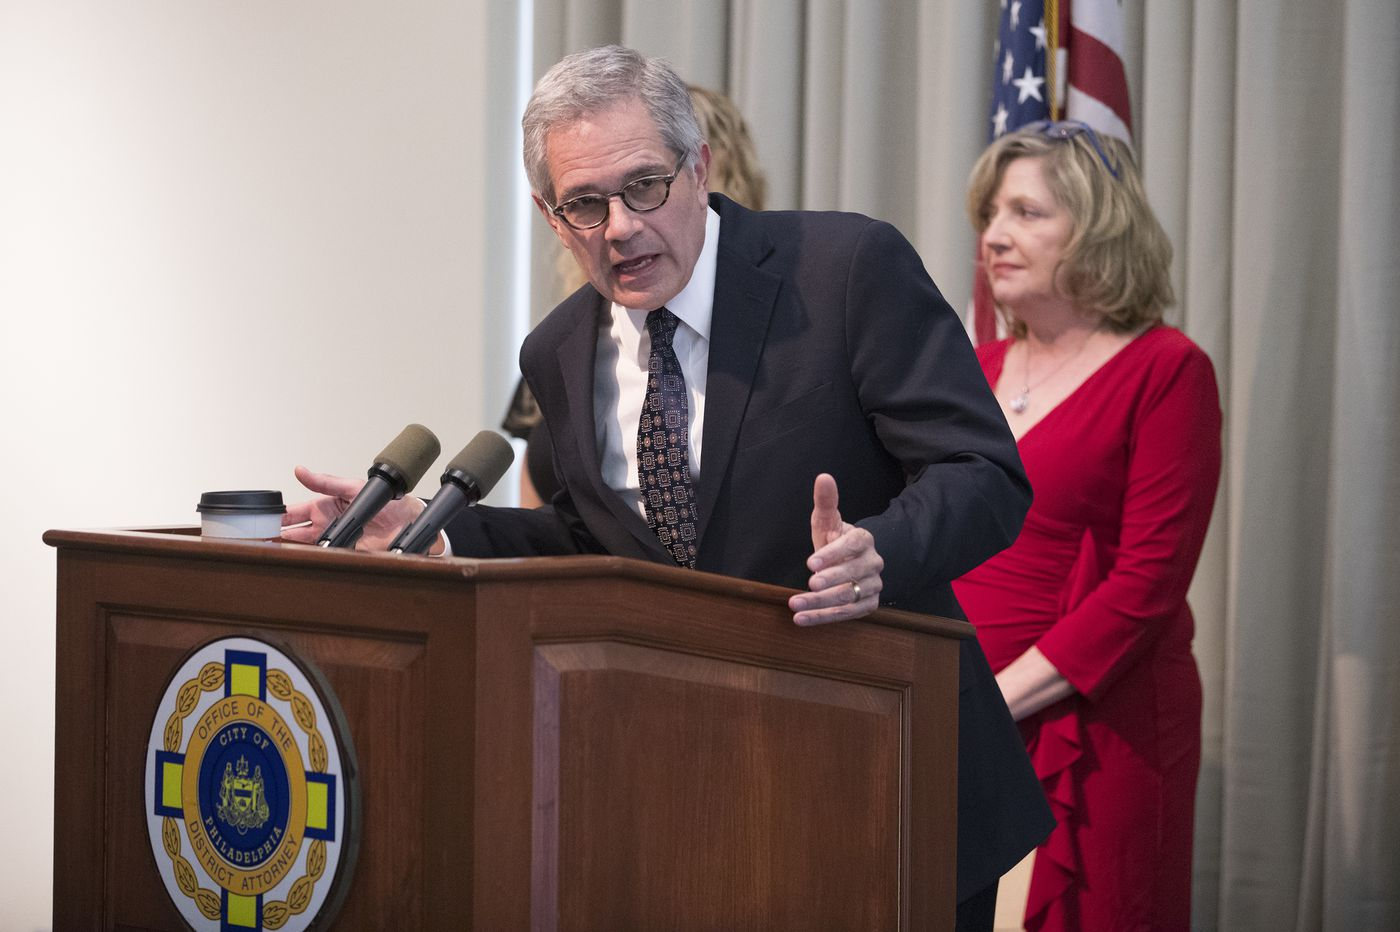 DA Larry Krasner announces theft charges against North Philly tow-truck operator